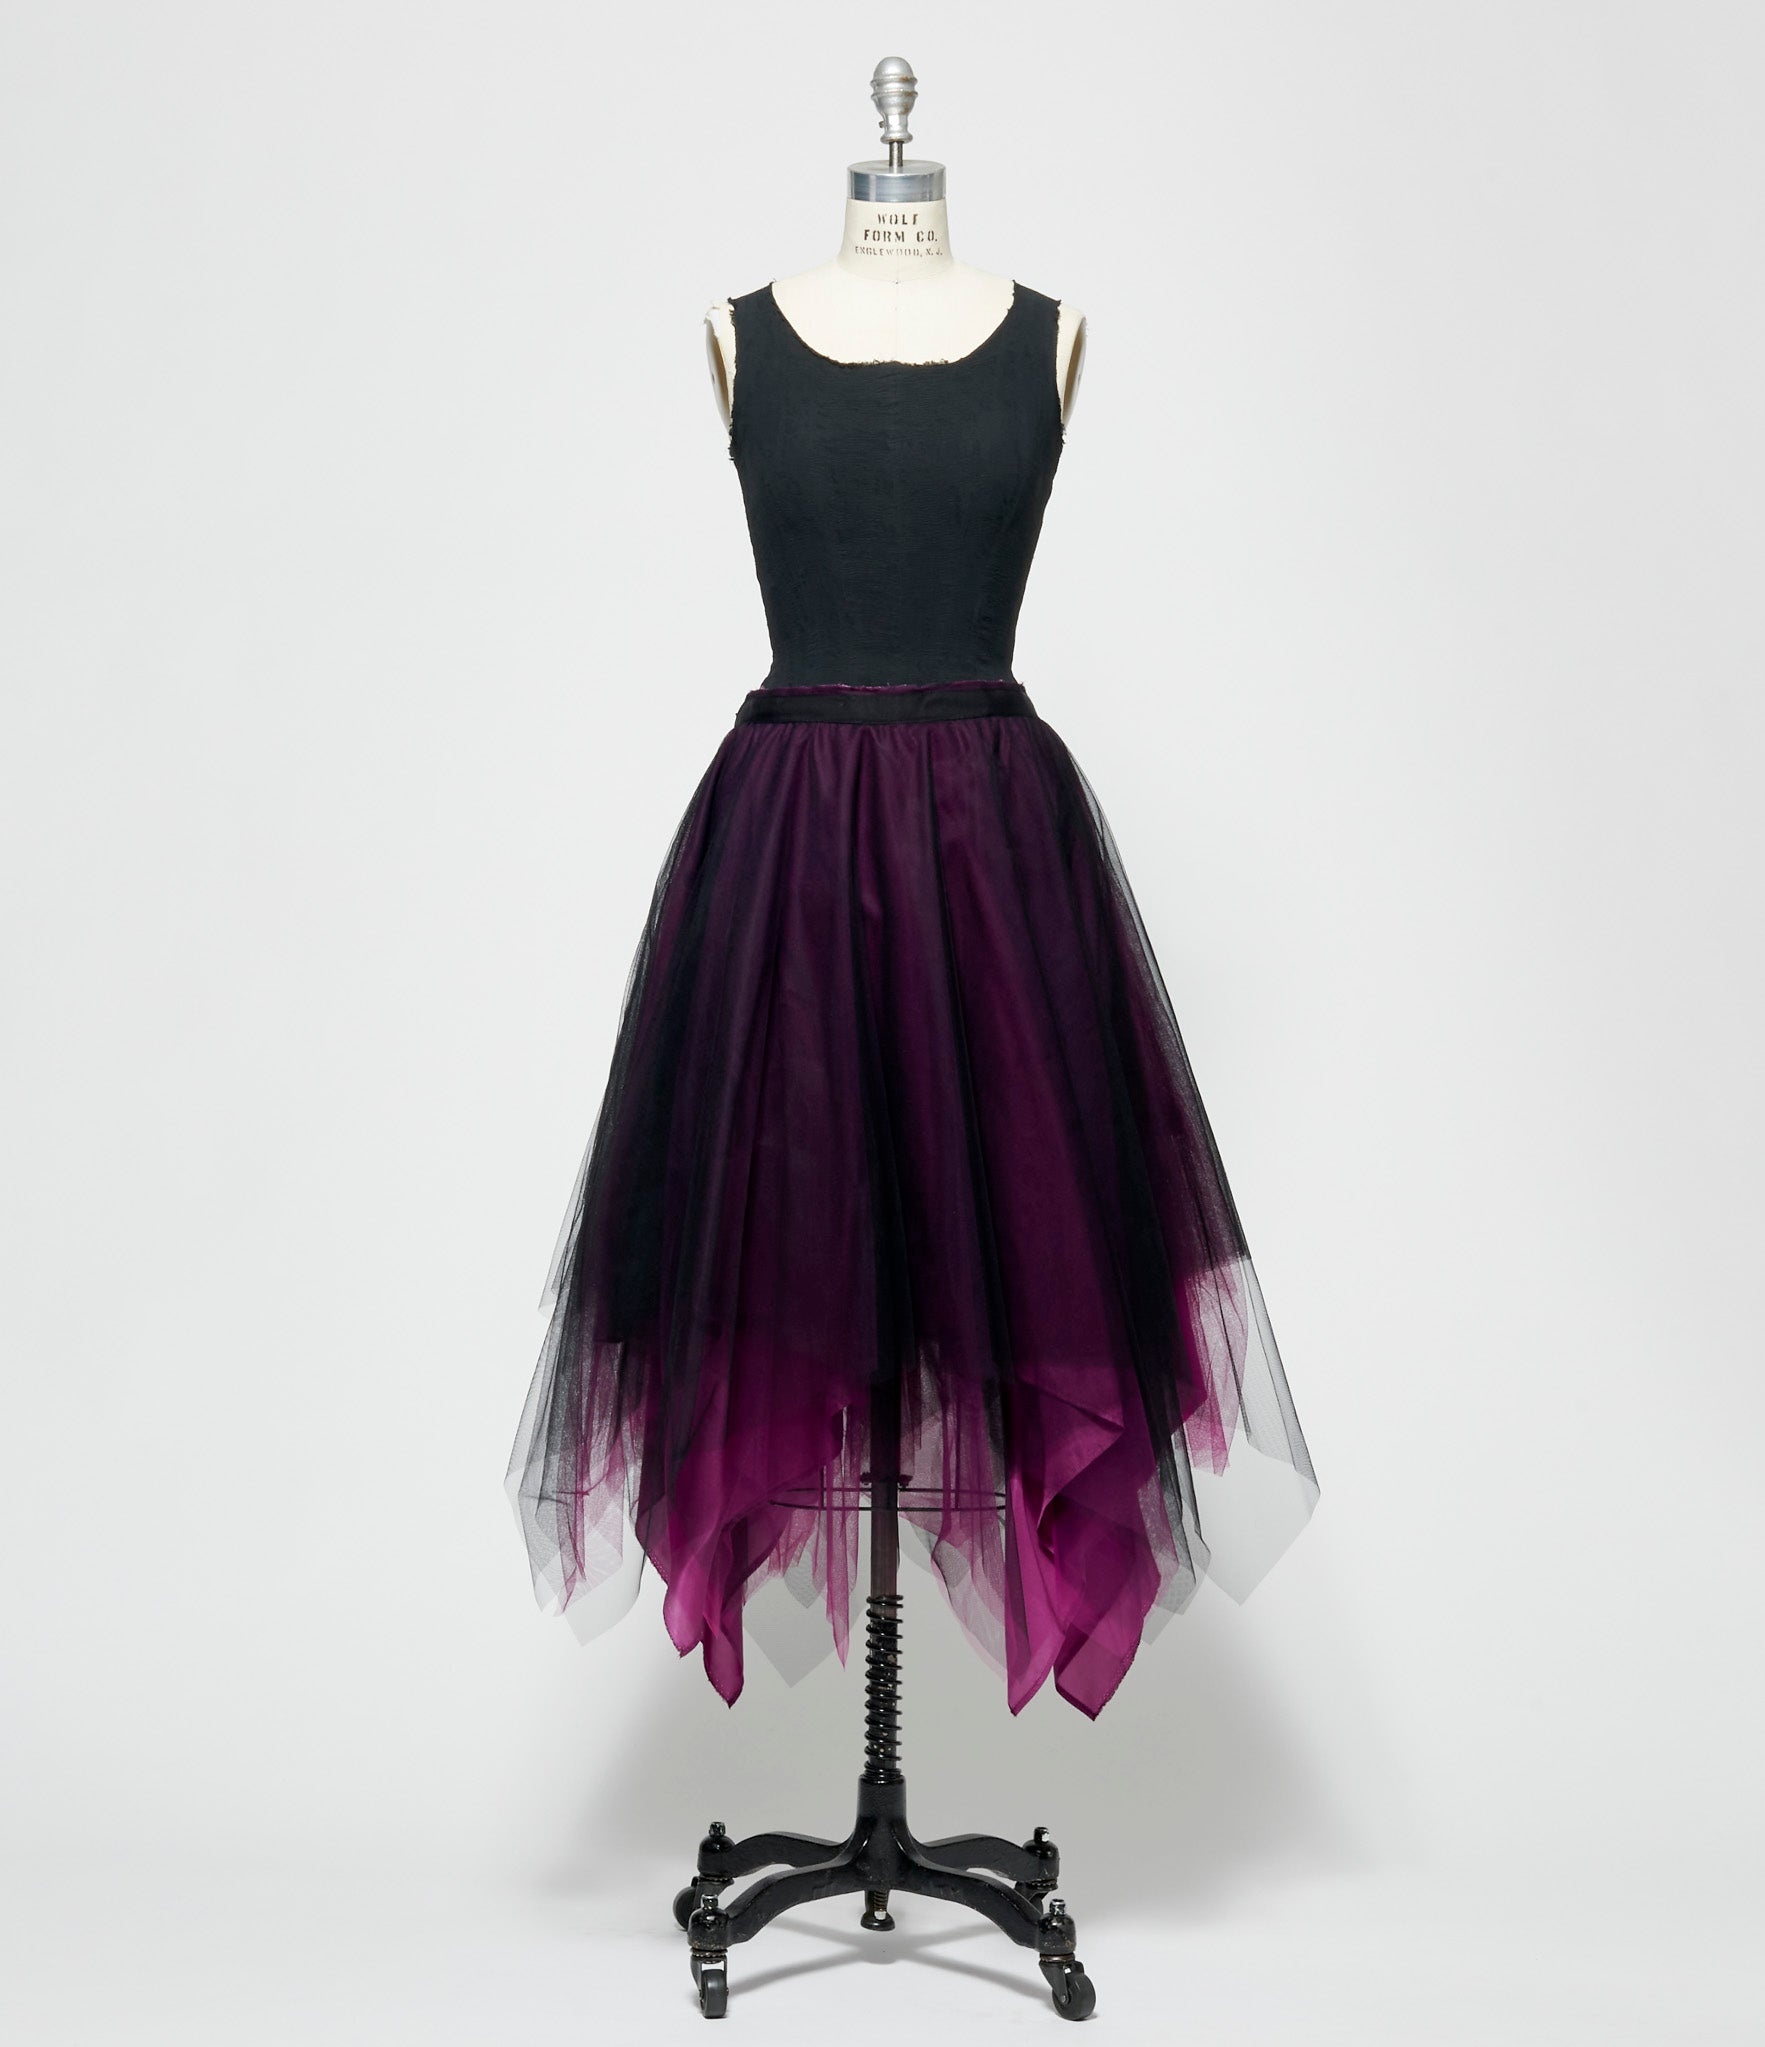 Marc Le Bihan Bi-Color Shifted 6 Layer Tulle Skirt